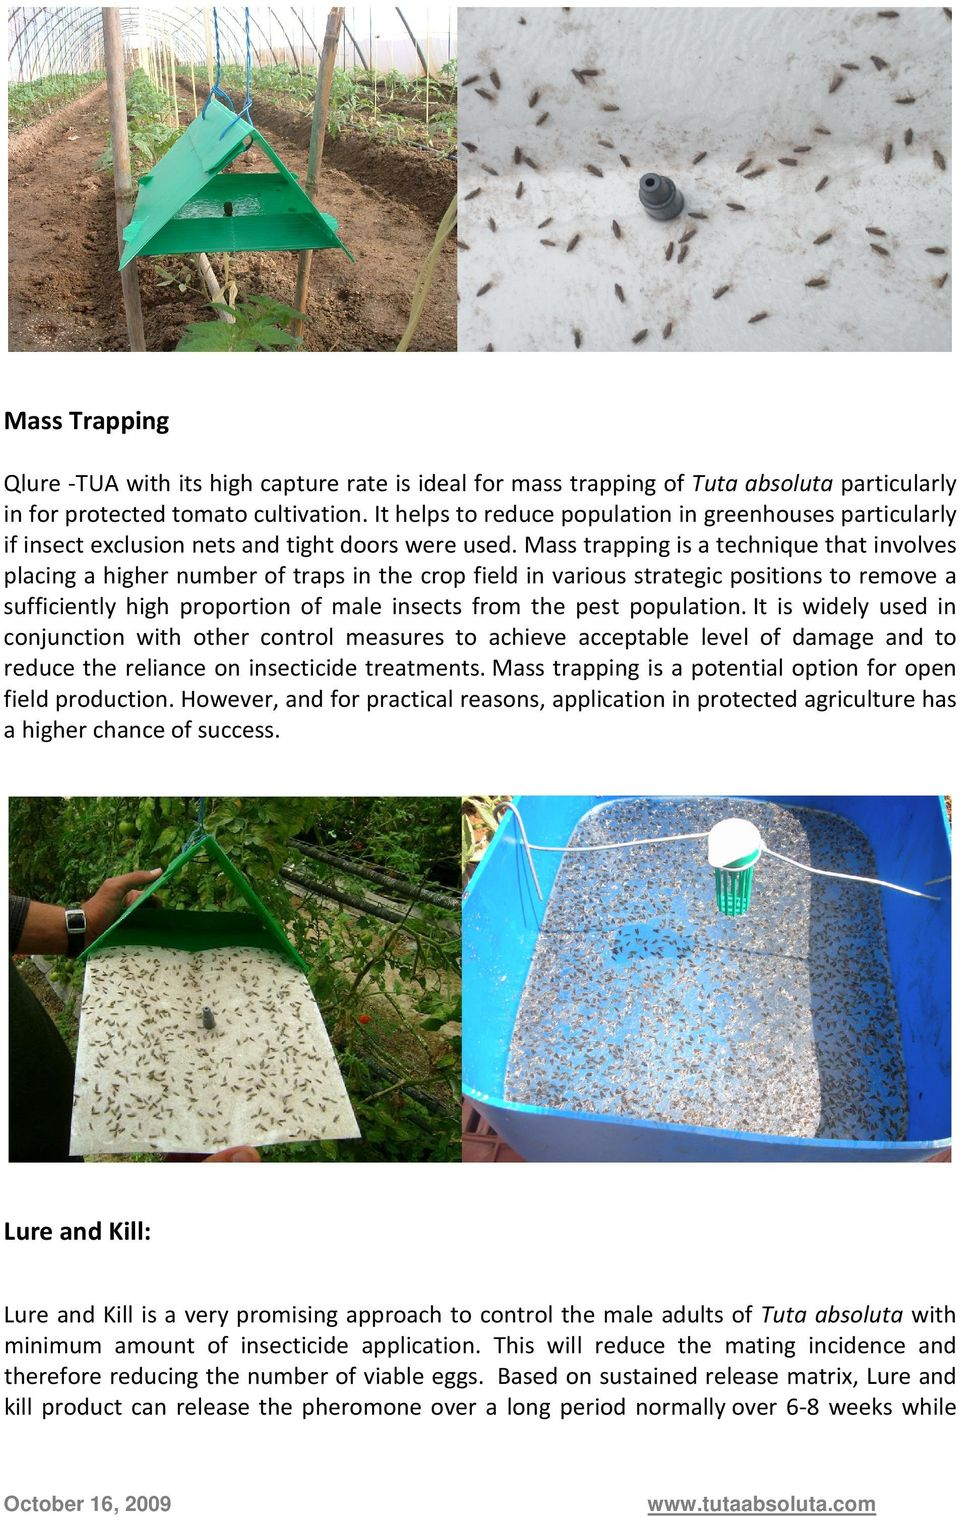 Mass trapping is a technique that involves placing a higher number of traps in the crop field in various strategic positions to remove a sufficiently high proportion of male insects from the pest